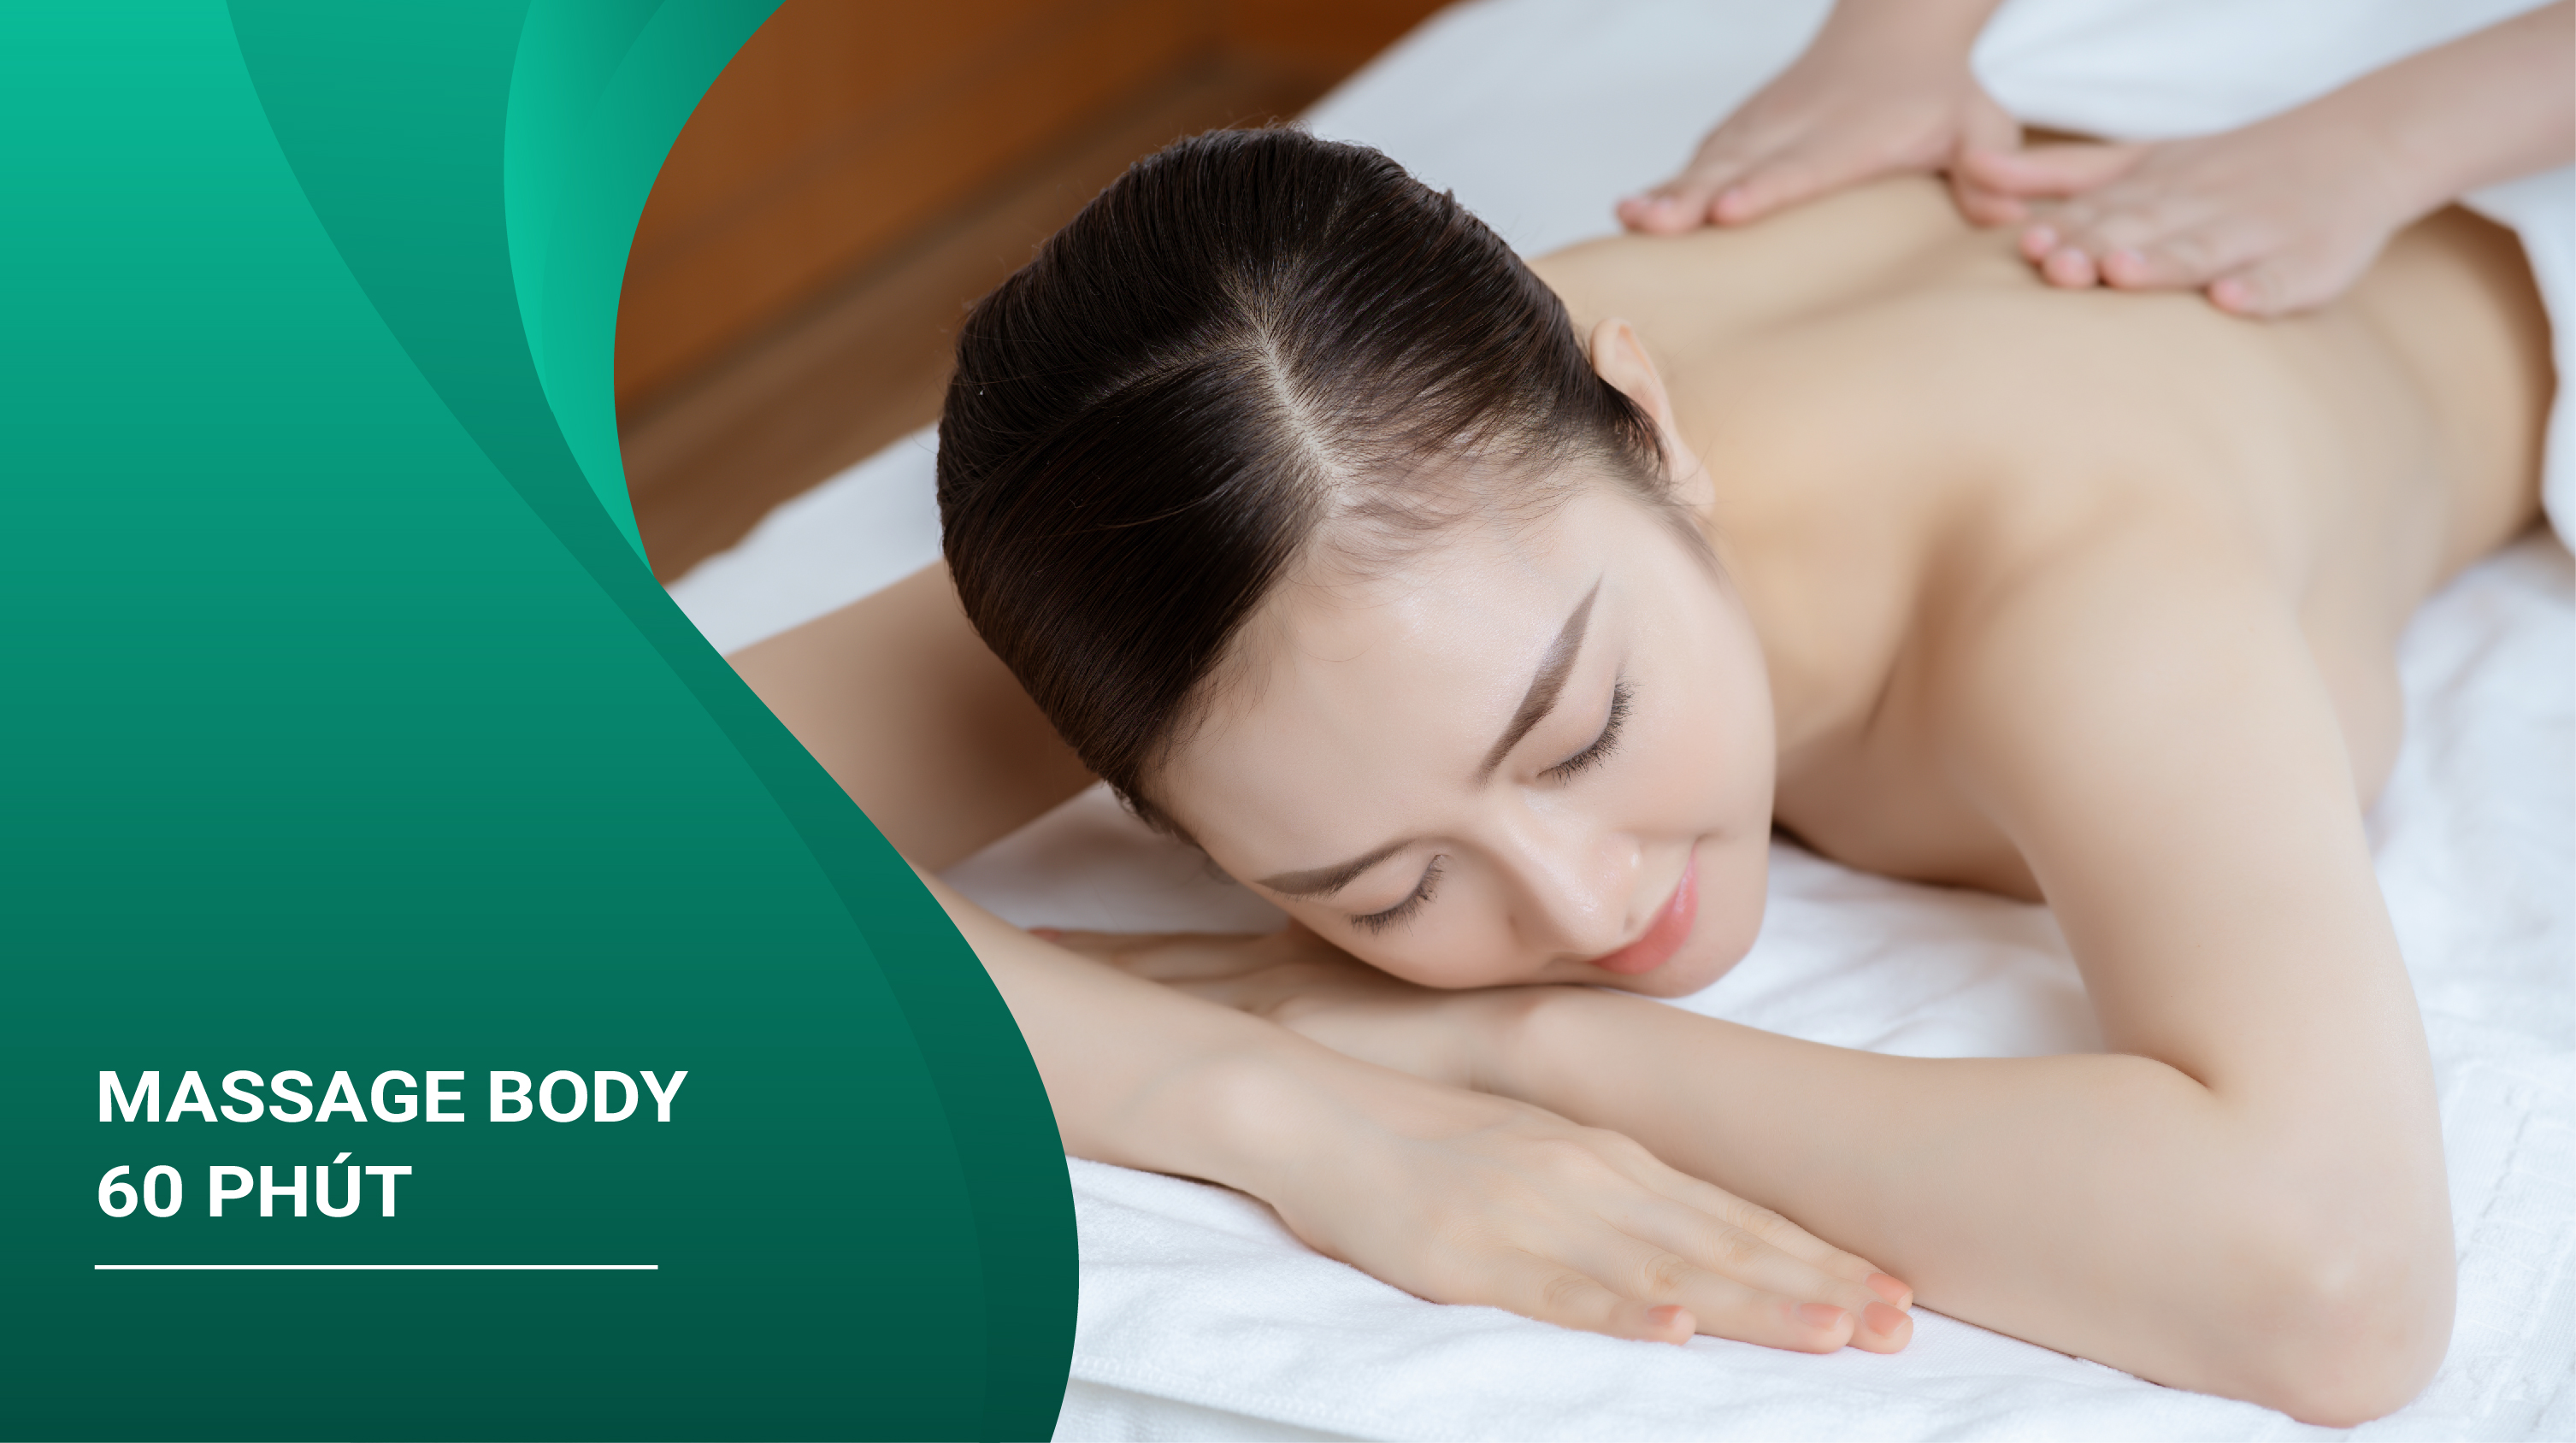 Massage body 60 phút